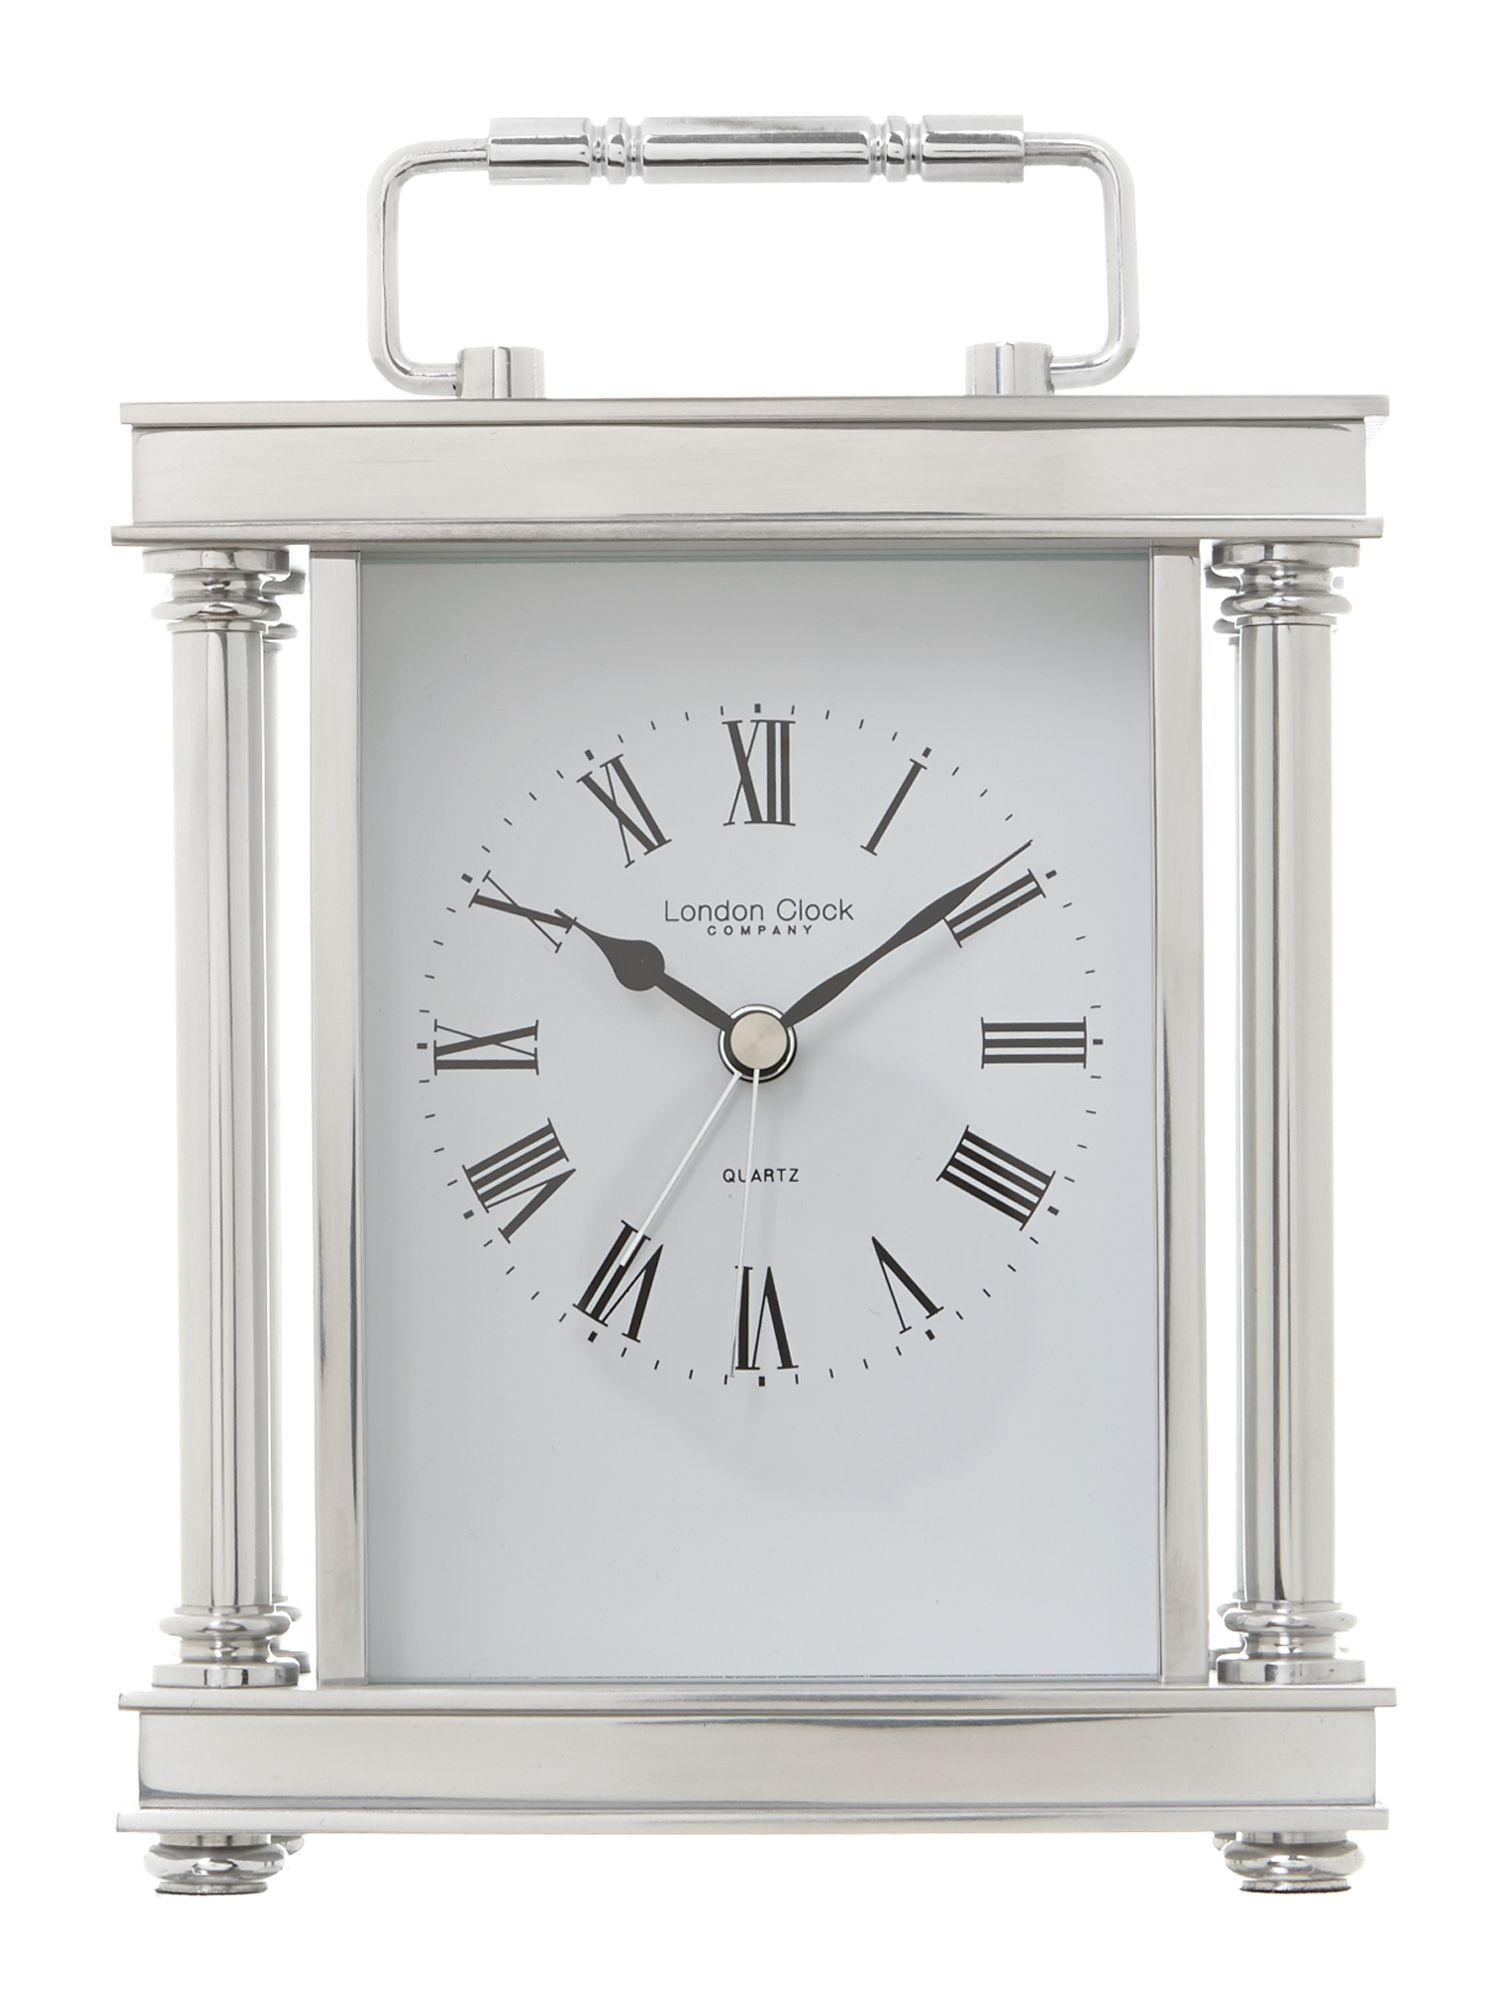 Silver finish carriage clock